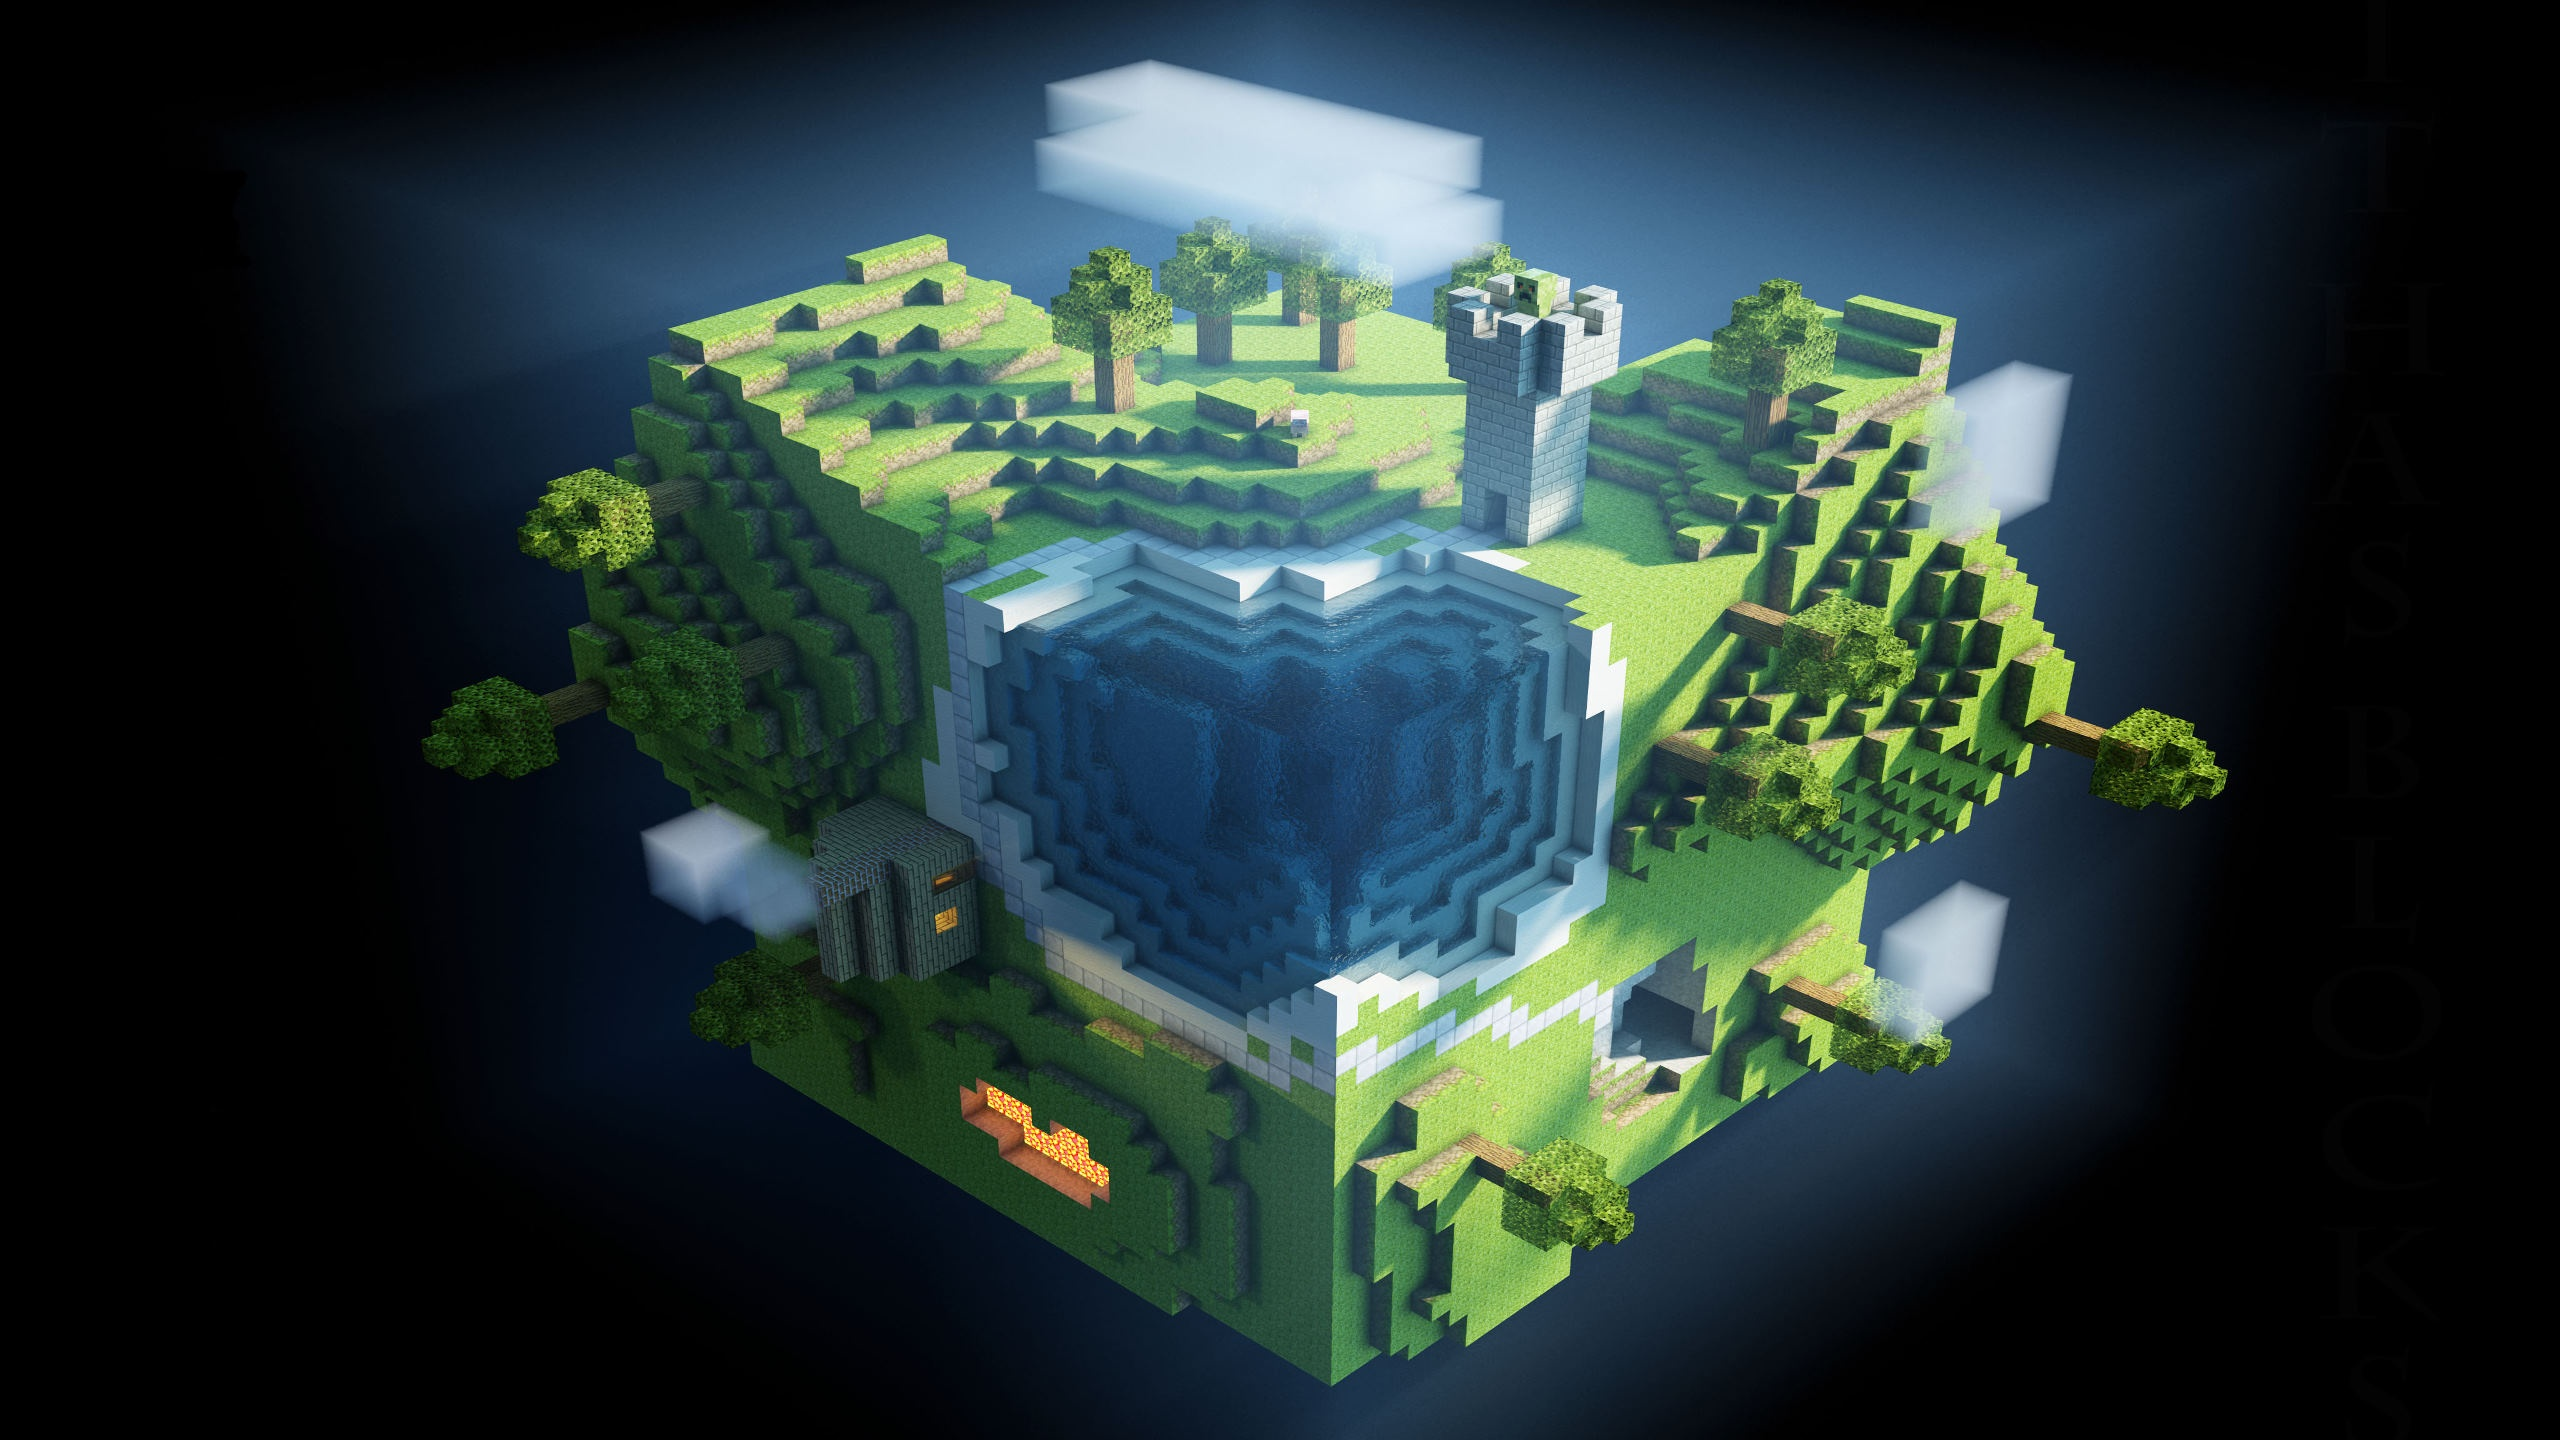 2560x1440 Minecraft desktop PC and Mac wallpaper 2560x1440